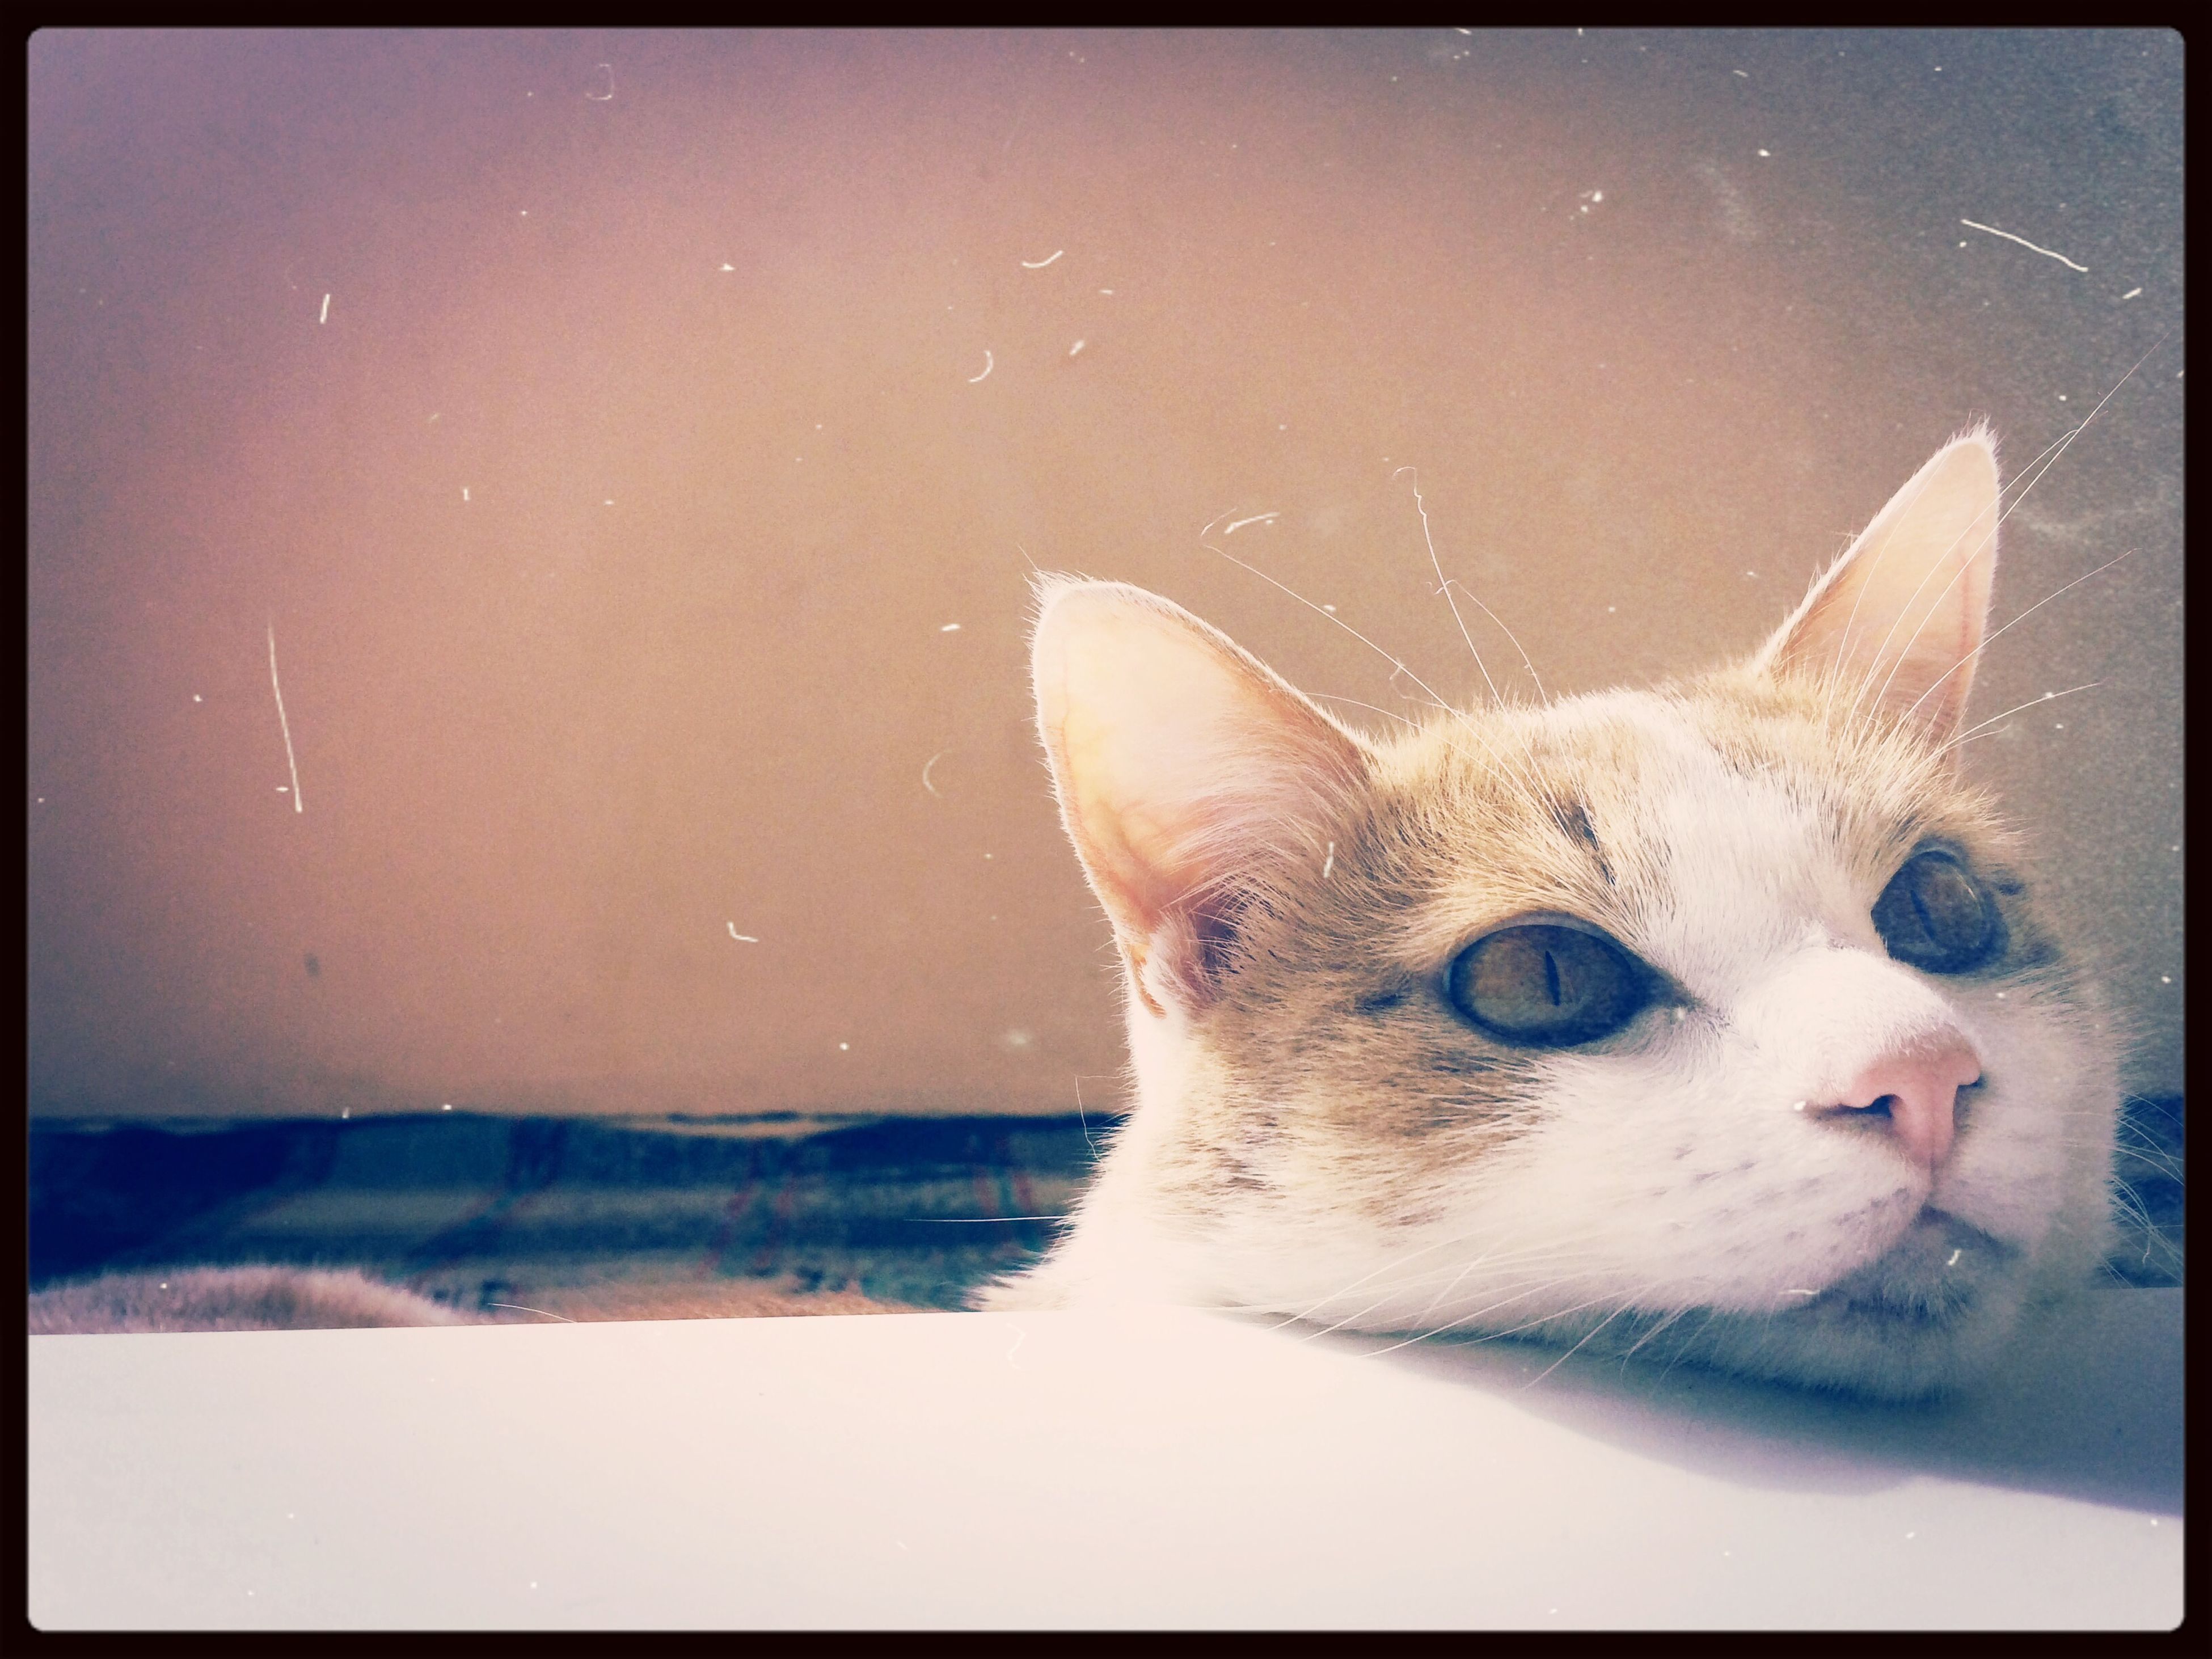 transfer print, one animal, animal themes, pets, auto post production filter, domestic animals, mammal, domestic cat, cat, close-up, water, animal head, indoors, nature, copy space, clear sky, dog, zoology, no people, feline